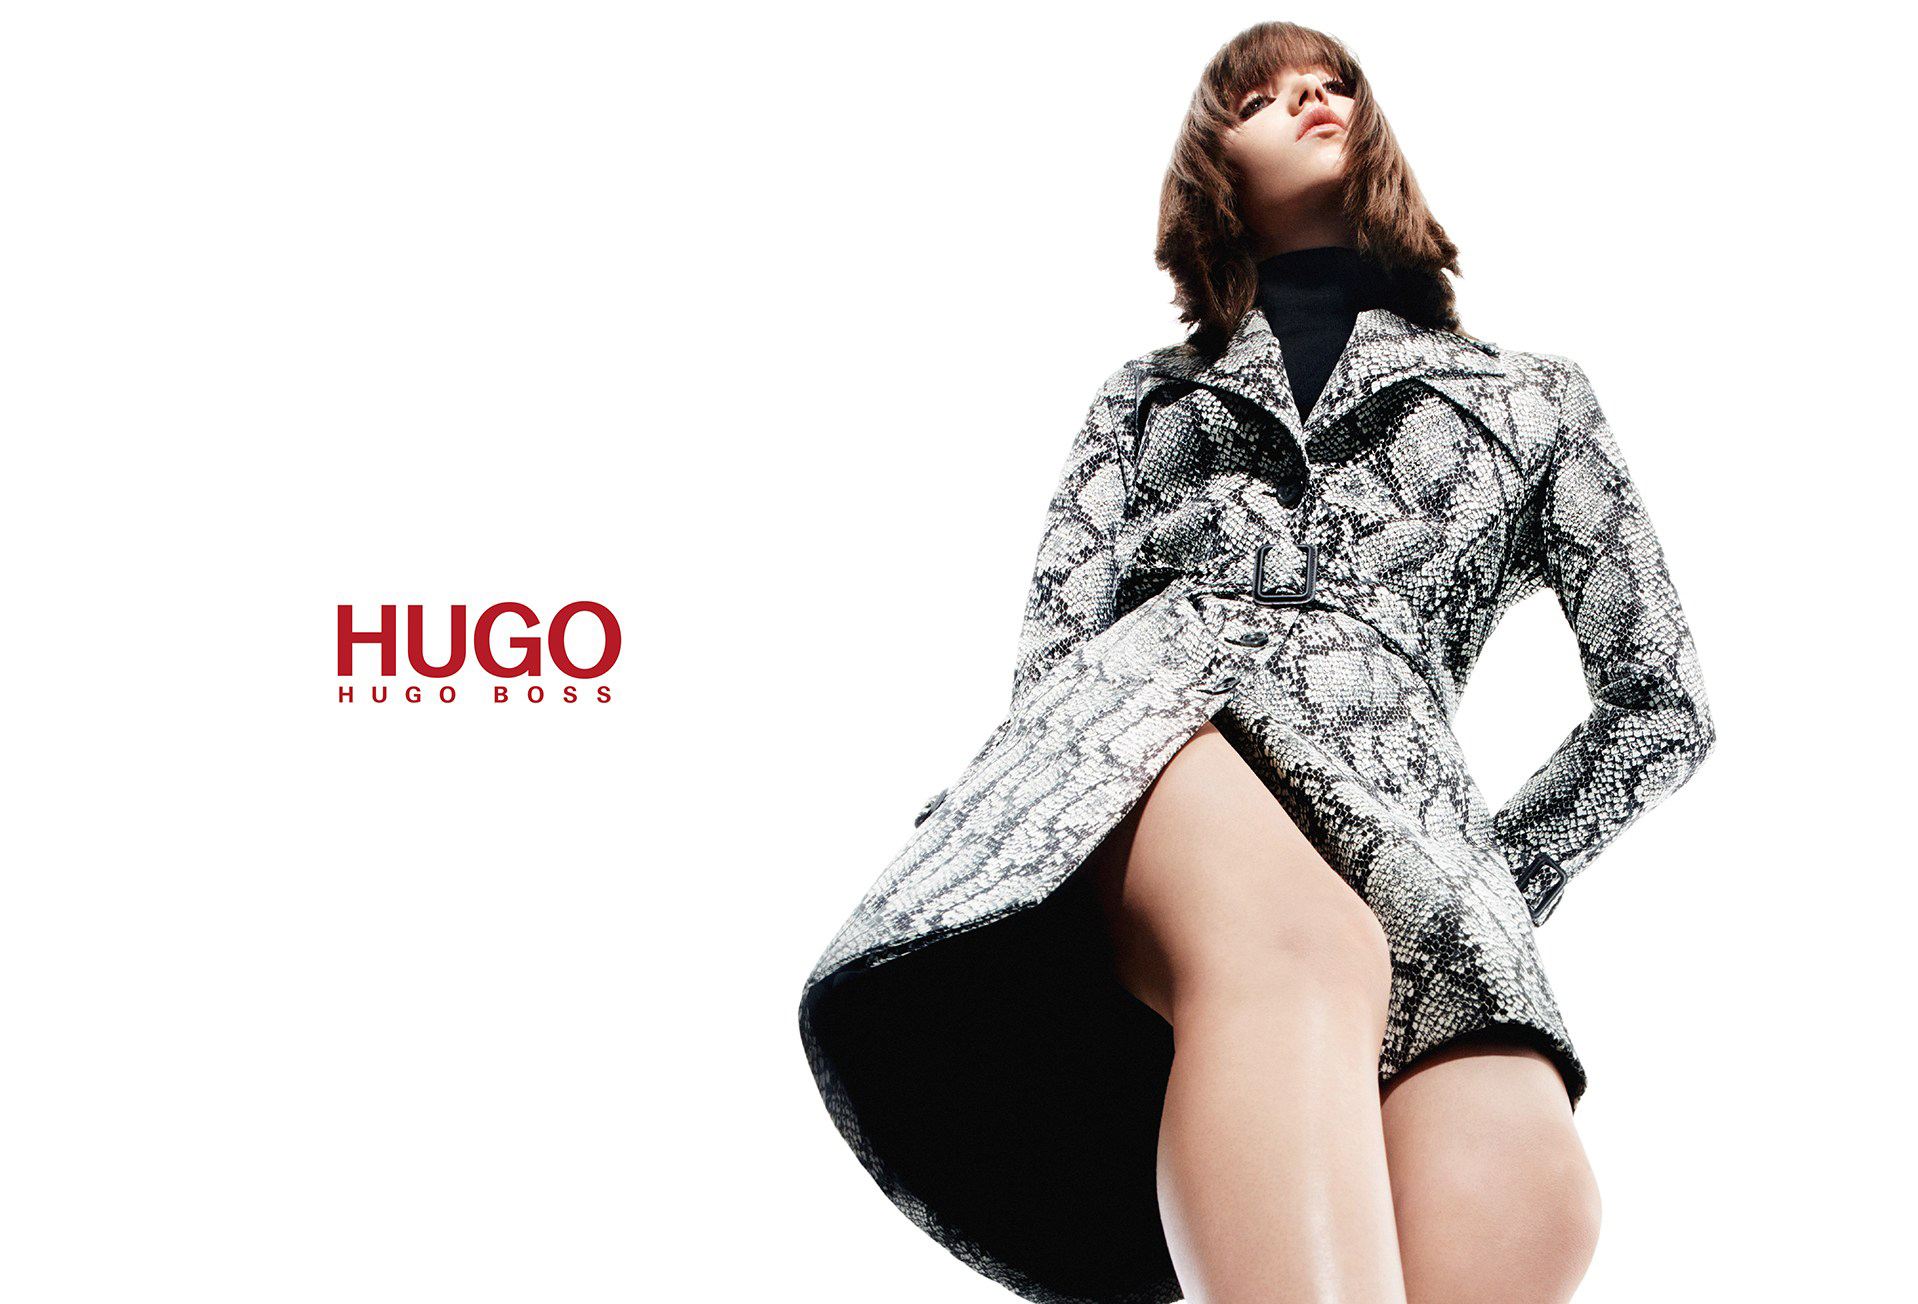 grace-hartzel-by-daniel-sannwald-for-hugo-by-hugo-boss-fallwinter-2015-2016